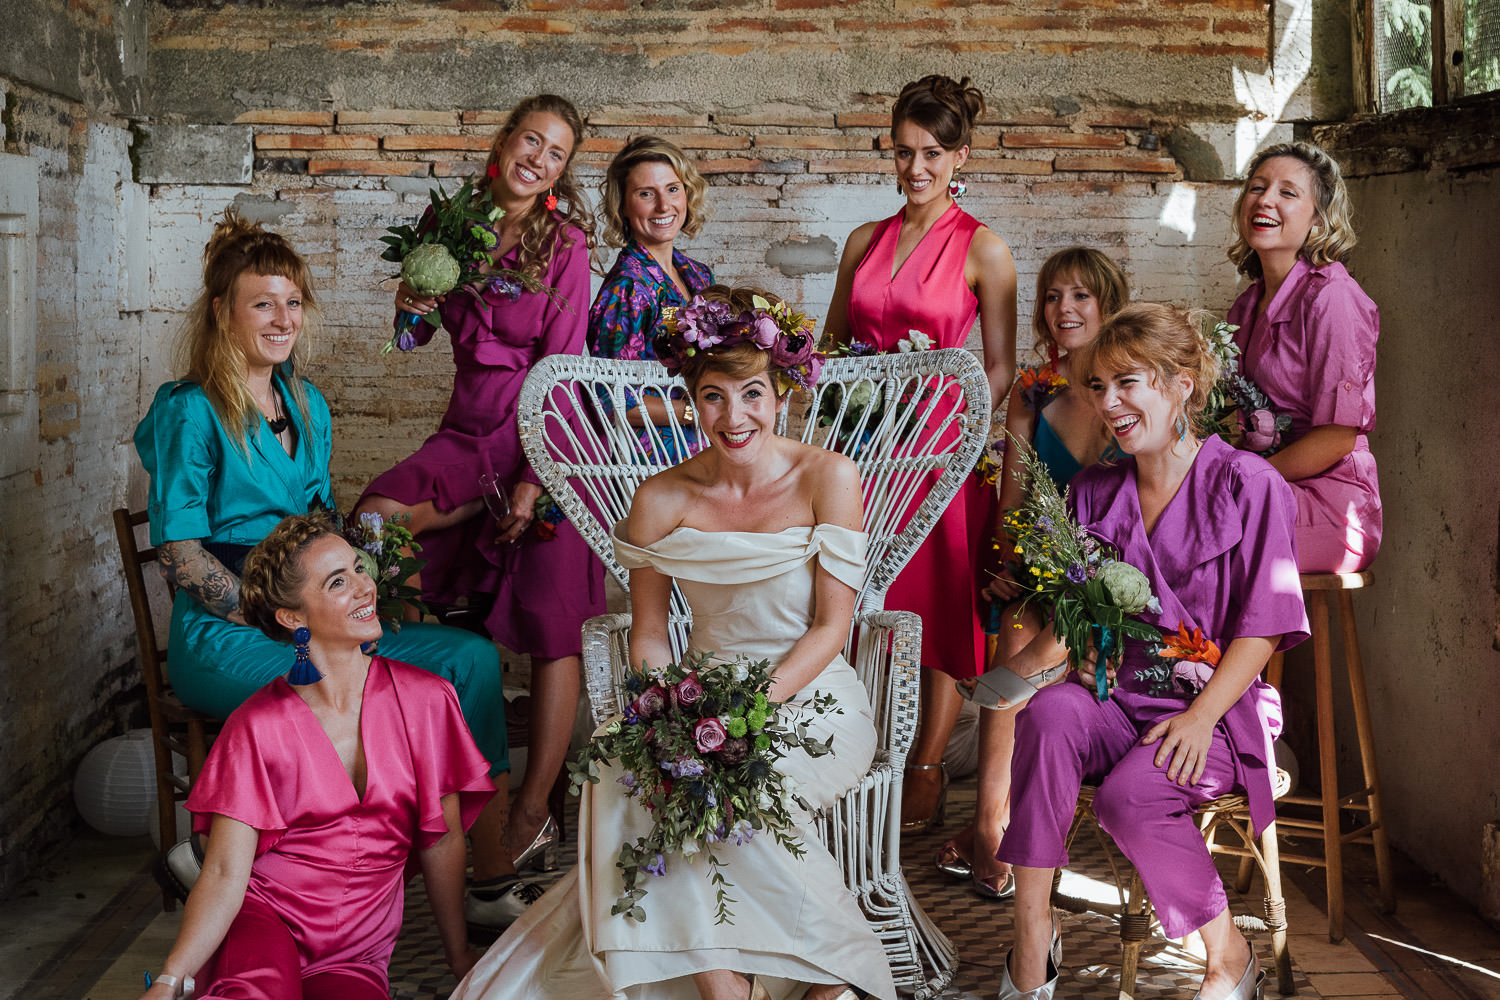 Vintage bridesmaids outfits in Bordeaux Chateau wedding by creative destination wedding photographer the shannons photography